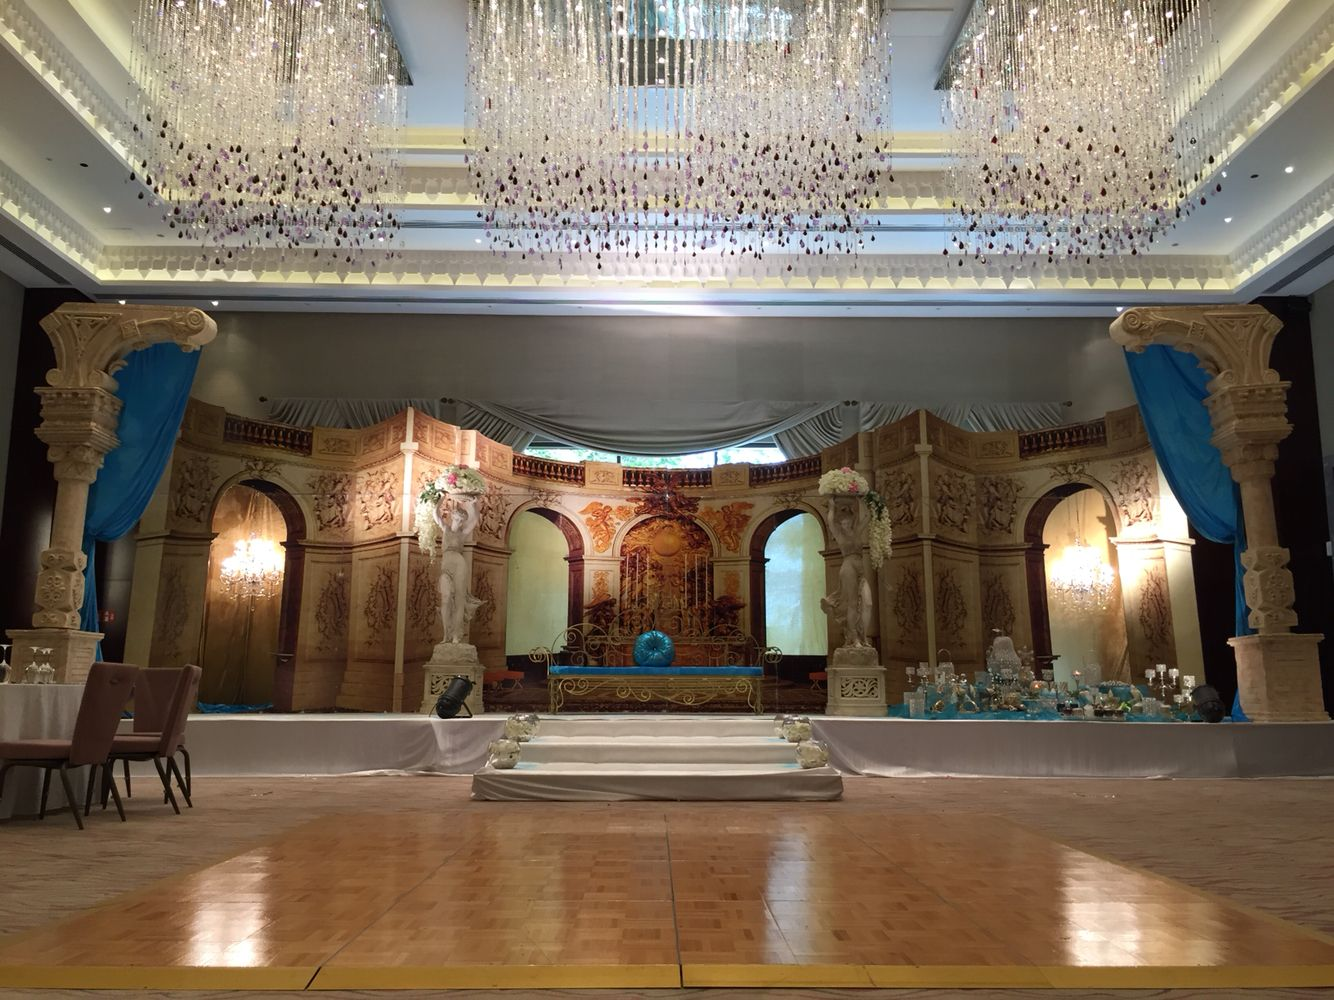 New style wedding stage decoration  Romanian Style  Wedding Stage Decorations  Pinterest  Wedding